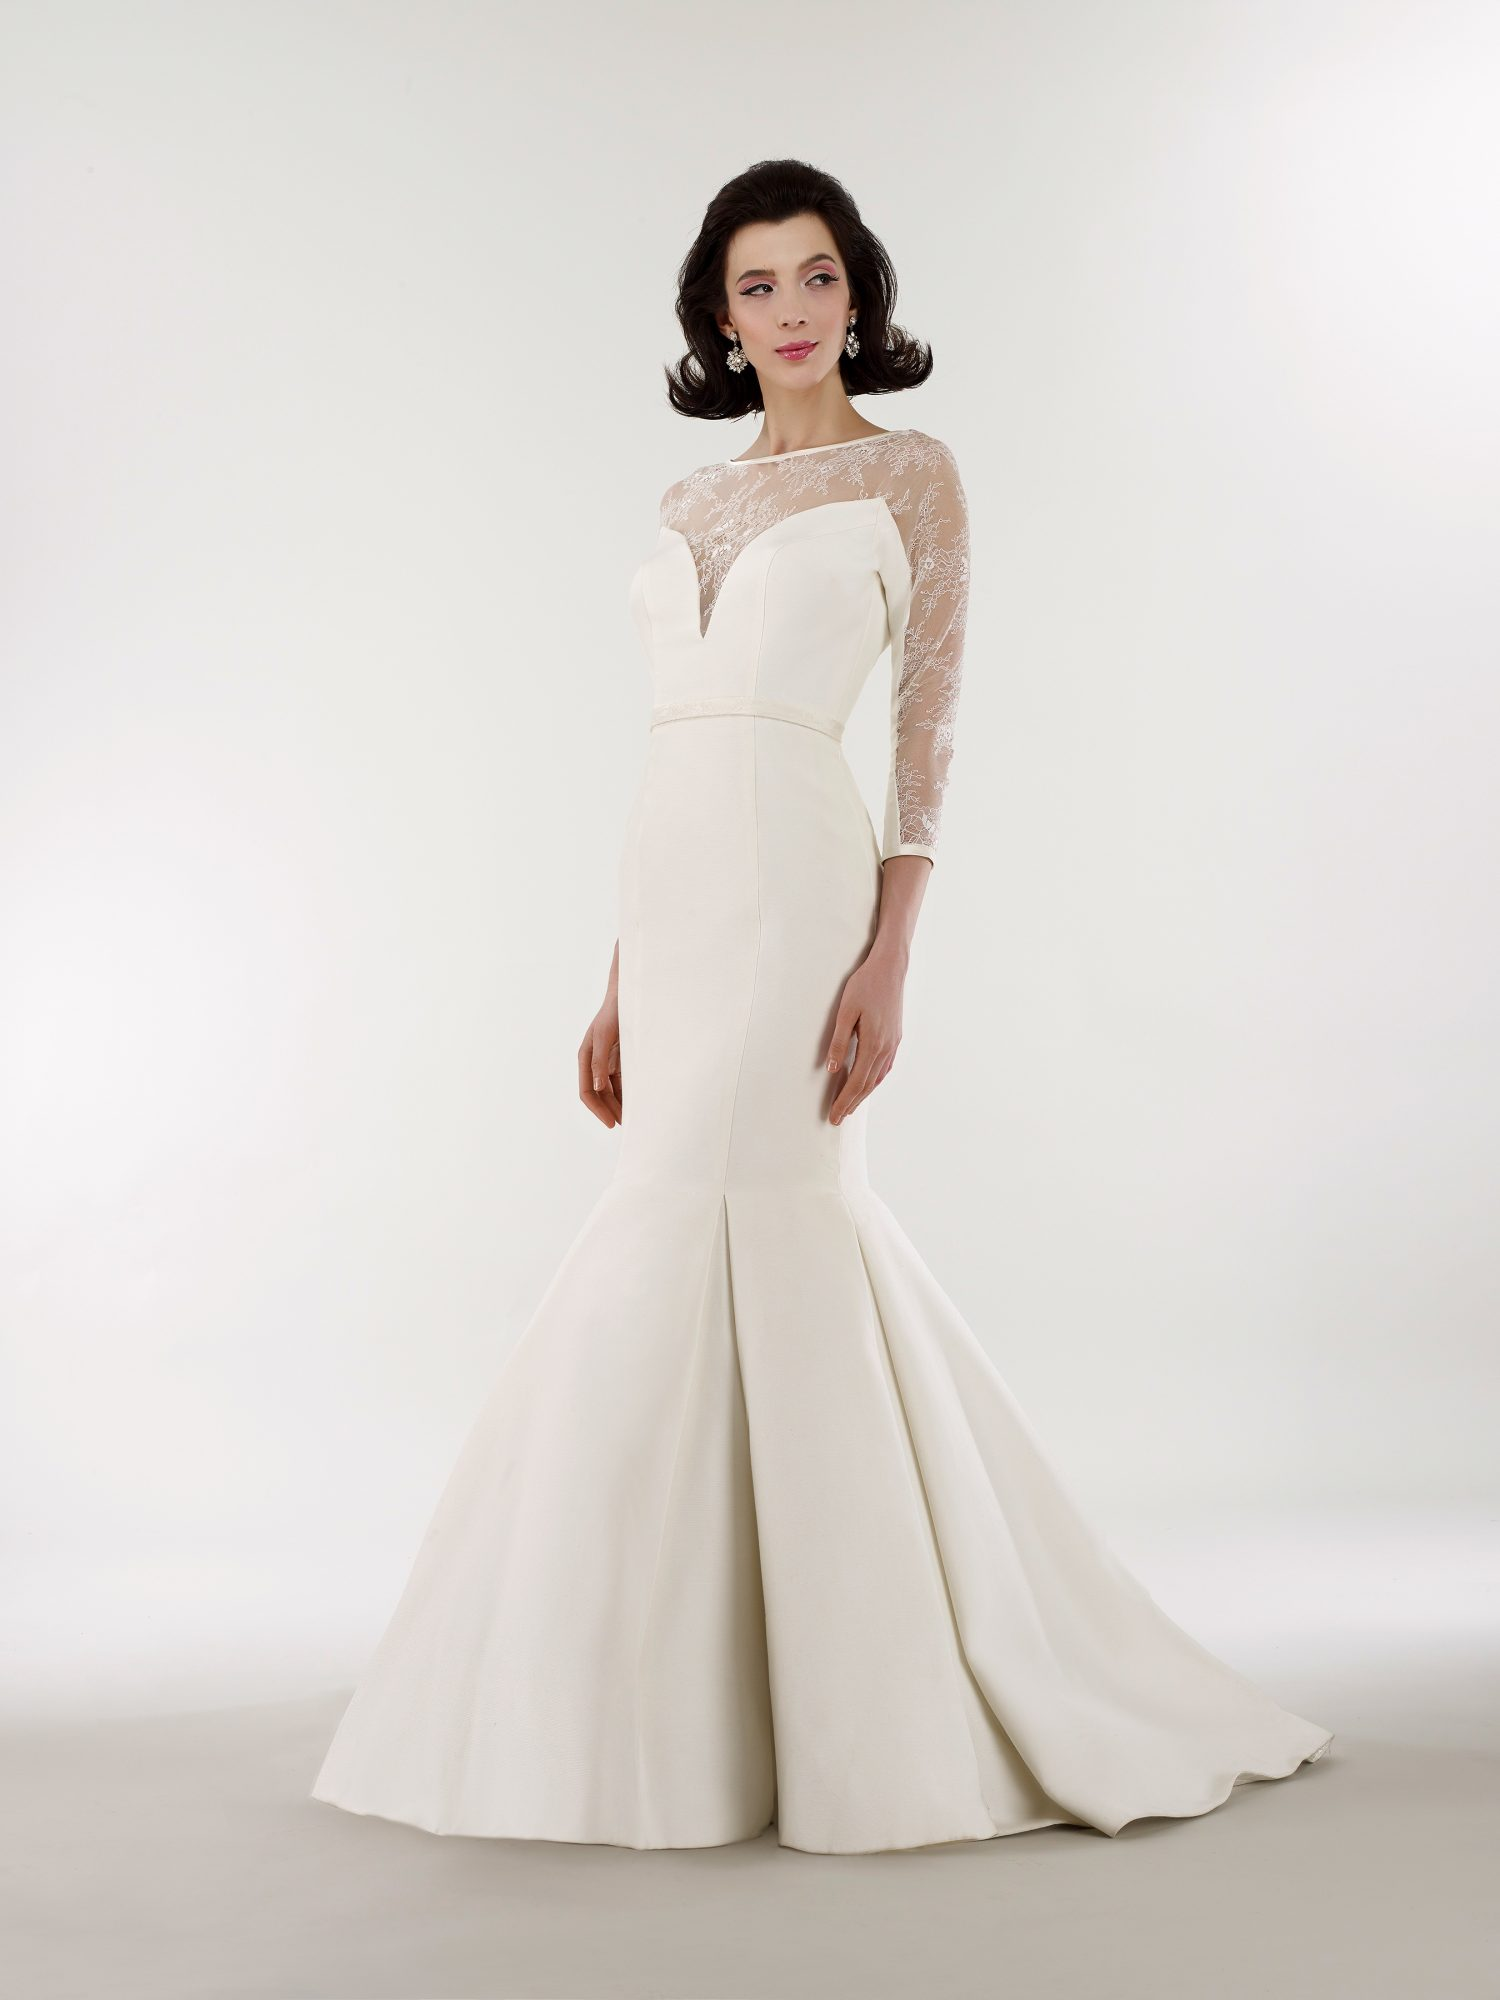 steven birnbaum bridal wedding dress spring 2019 trumpet illusion three-quarter length sleeves